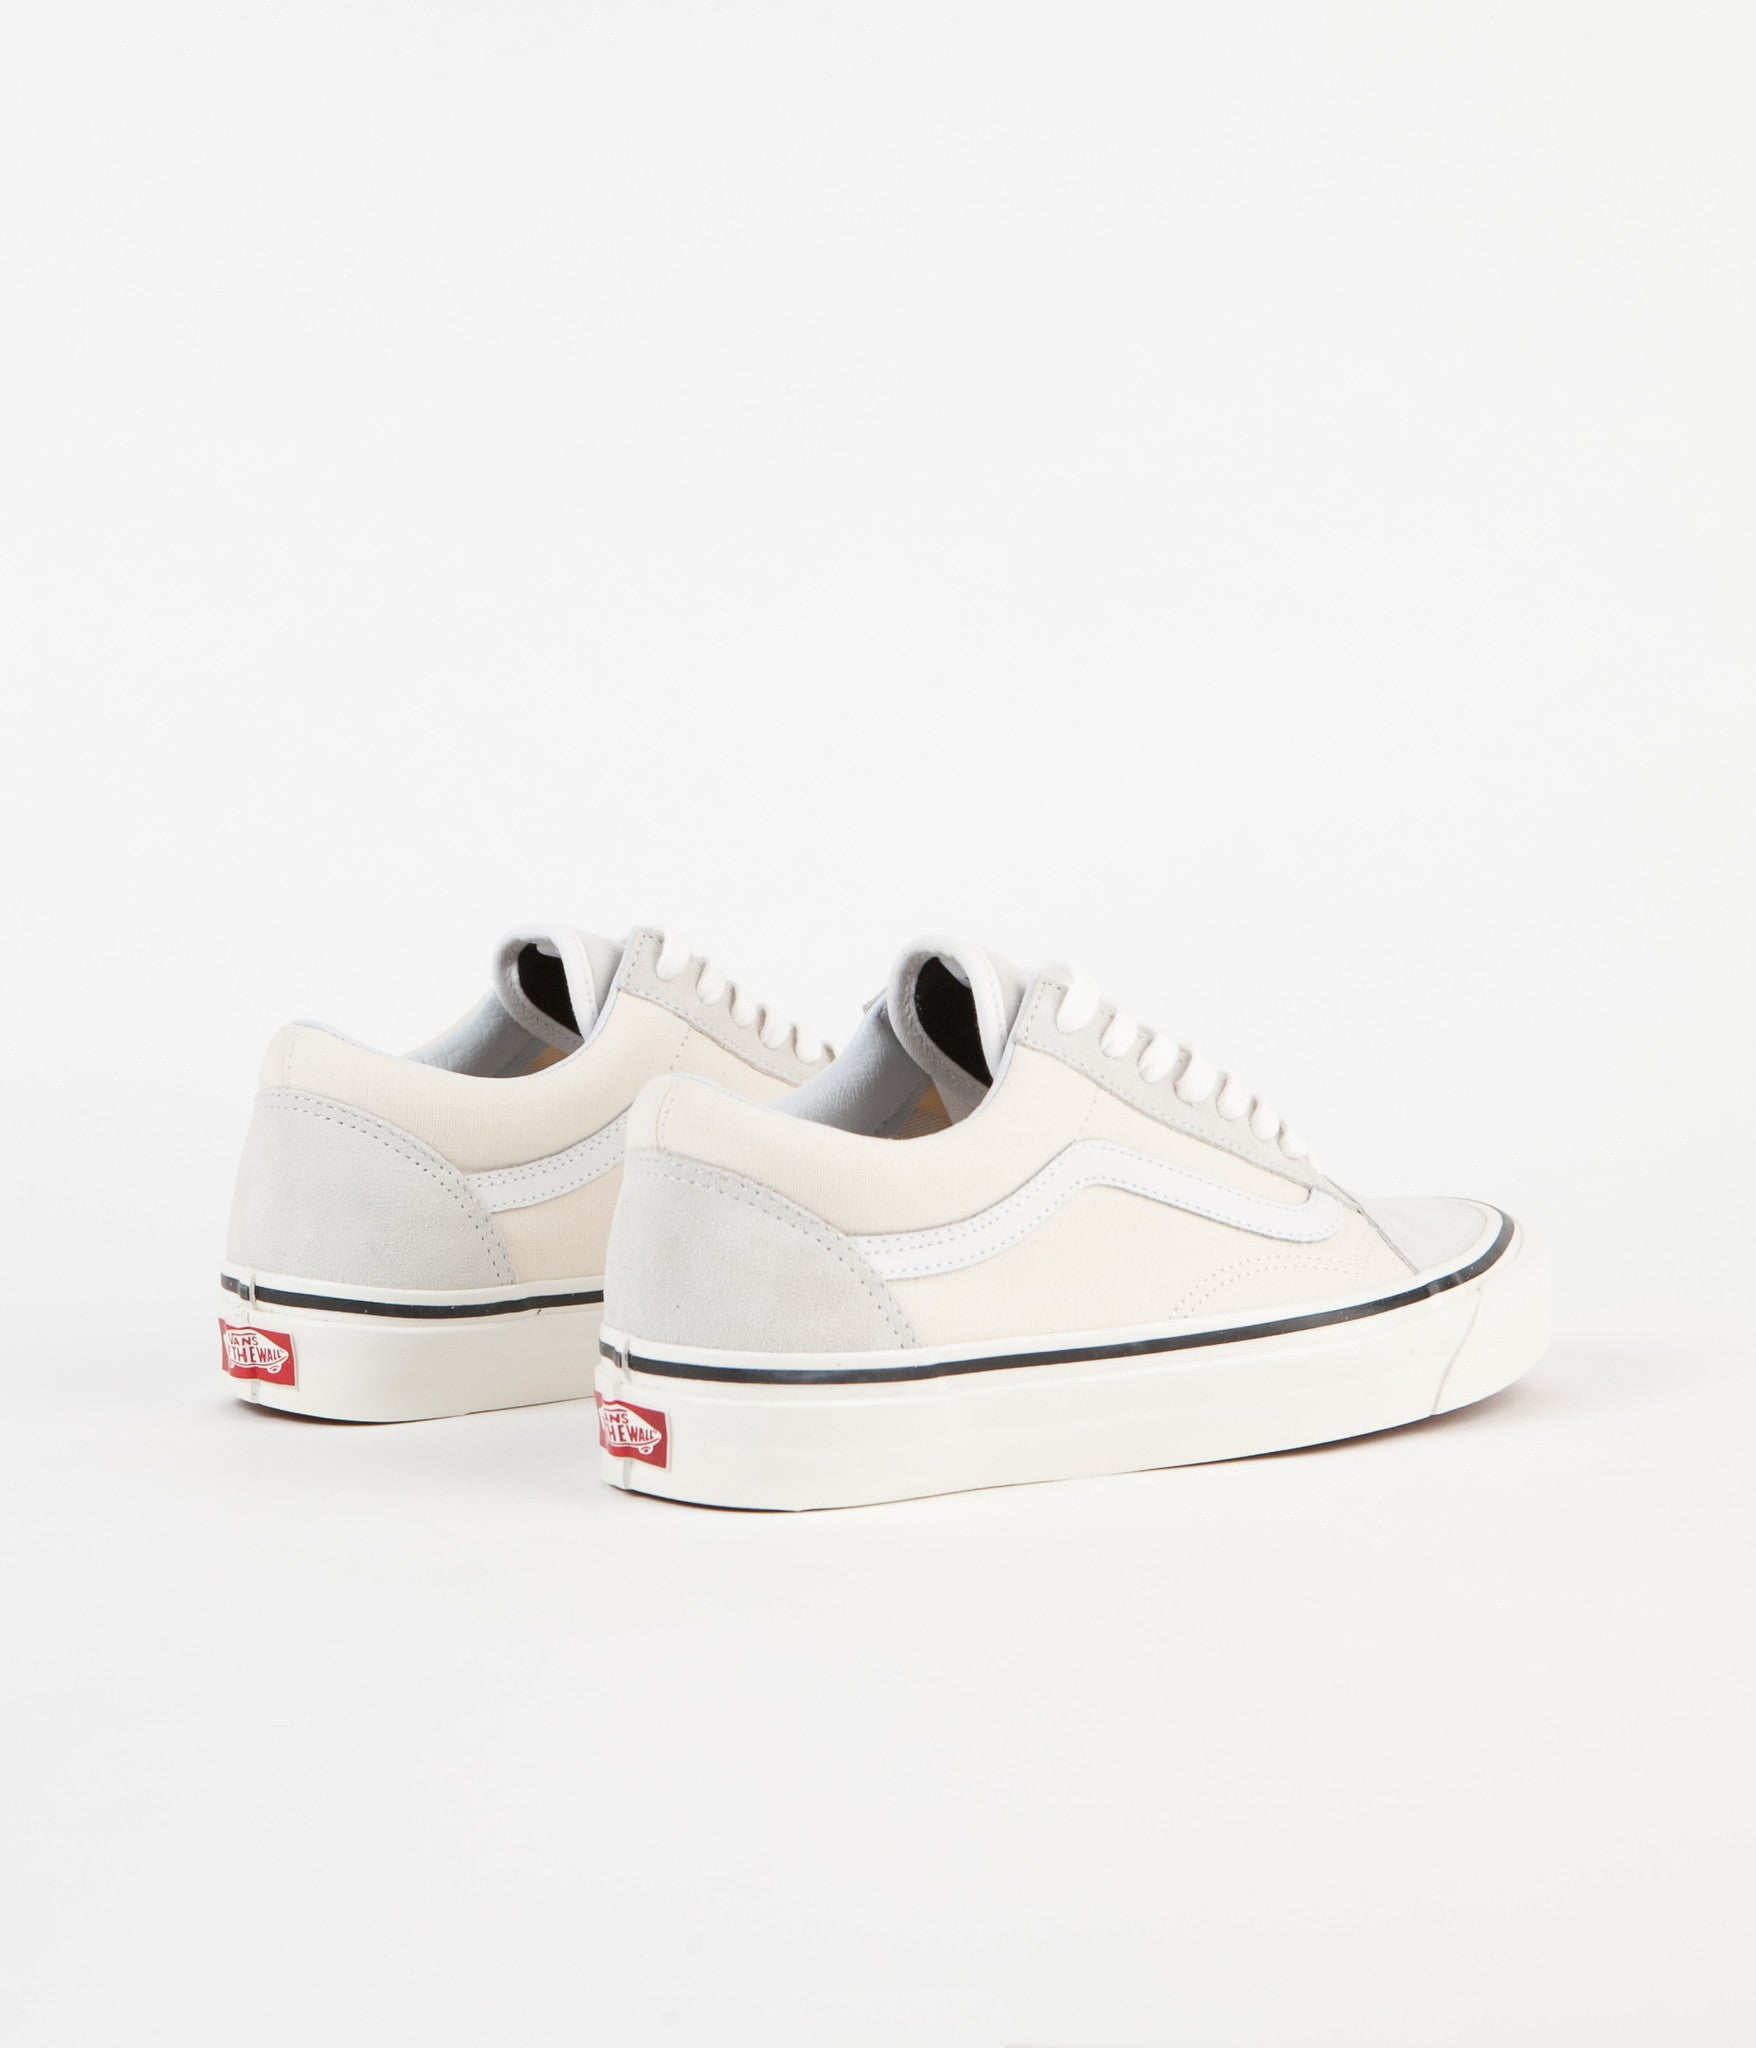 a04d082e03 ... Vans Old Skool 36 DX Anaheim Factory Shoes - Classic White ...